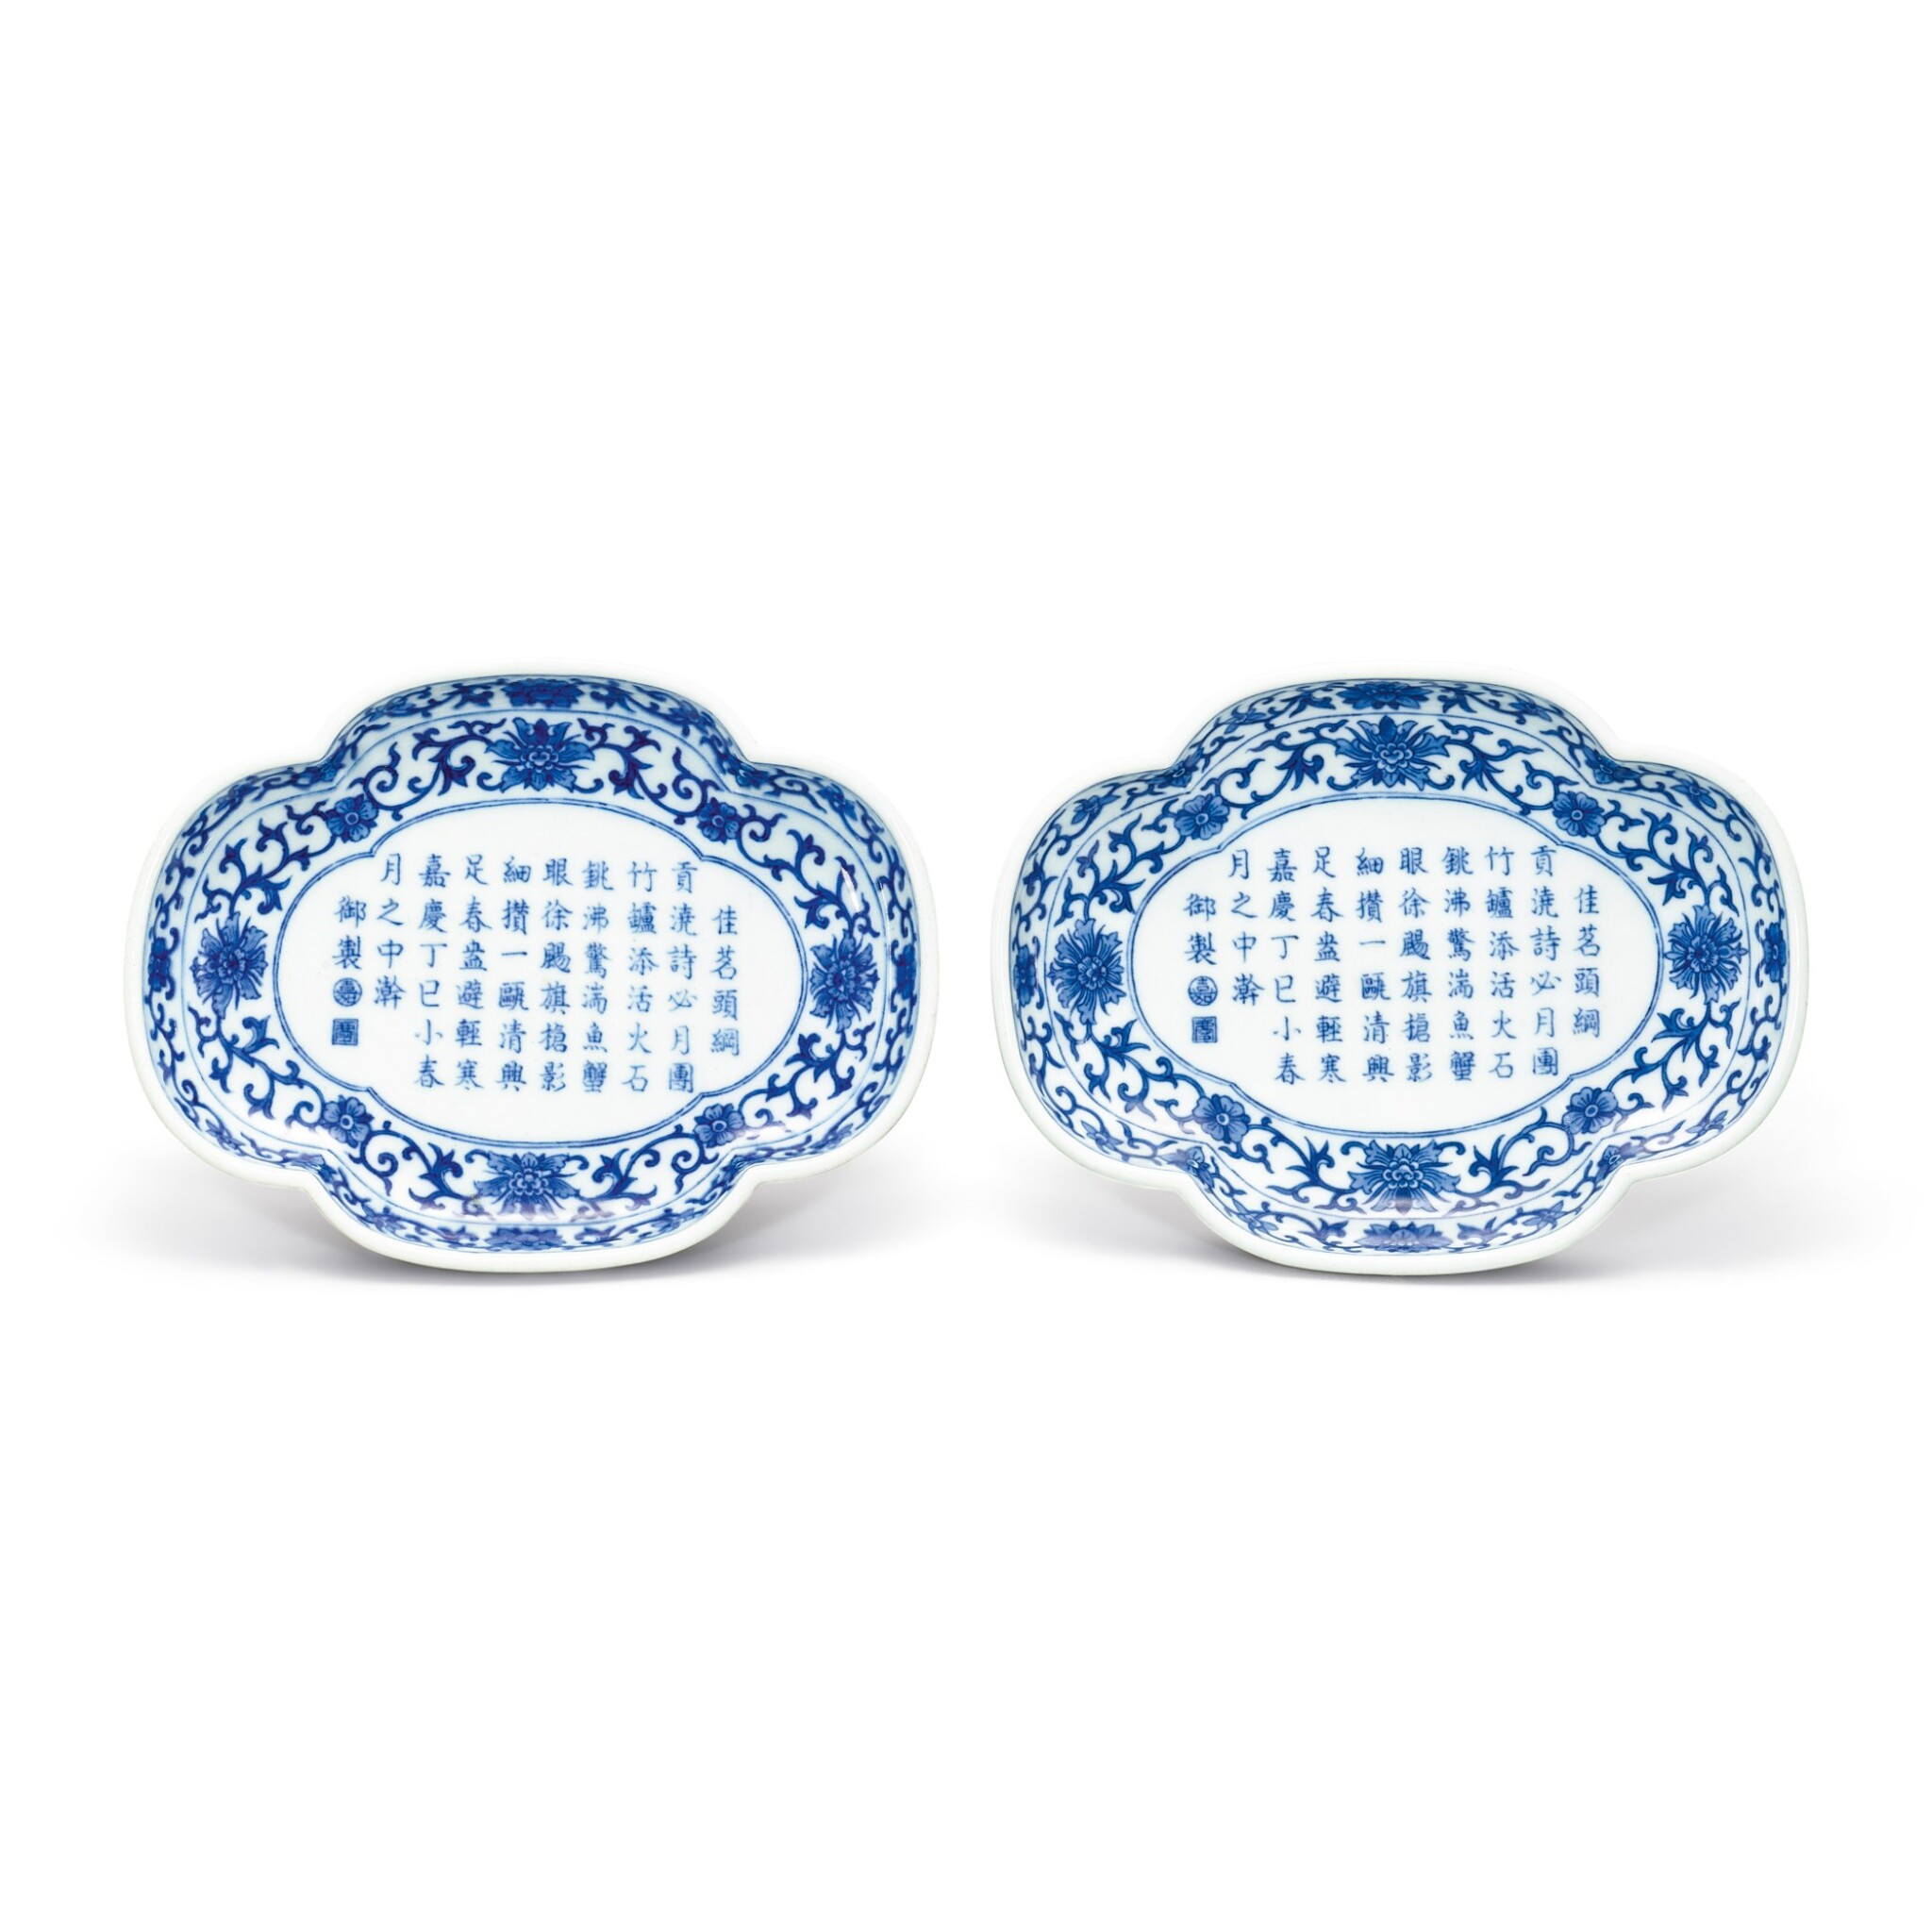 View 1 of Lot 105. A FINE PAIR OF INSCRIBED BLUE AND WHITE TEA TRAYS SEAL MARKS AND PERIOD OF JIAQING   清嘉慶 青花御題詩海棠式茶盤一對 《大清嘉慶年製》款.